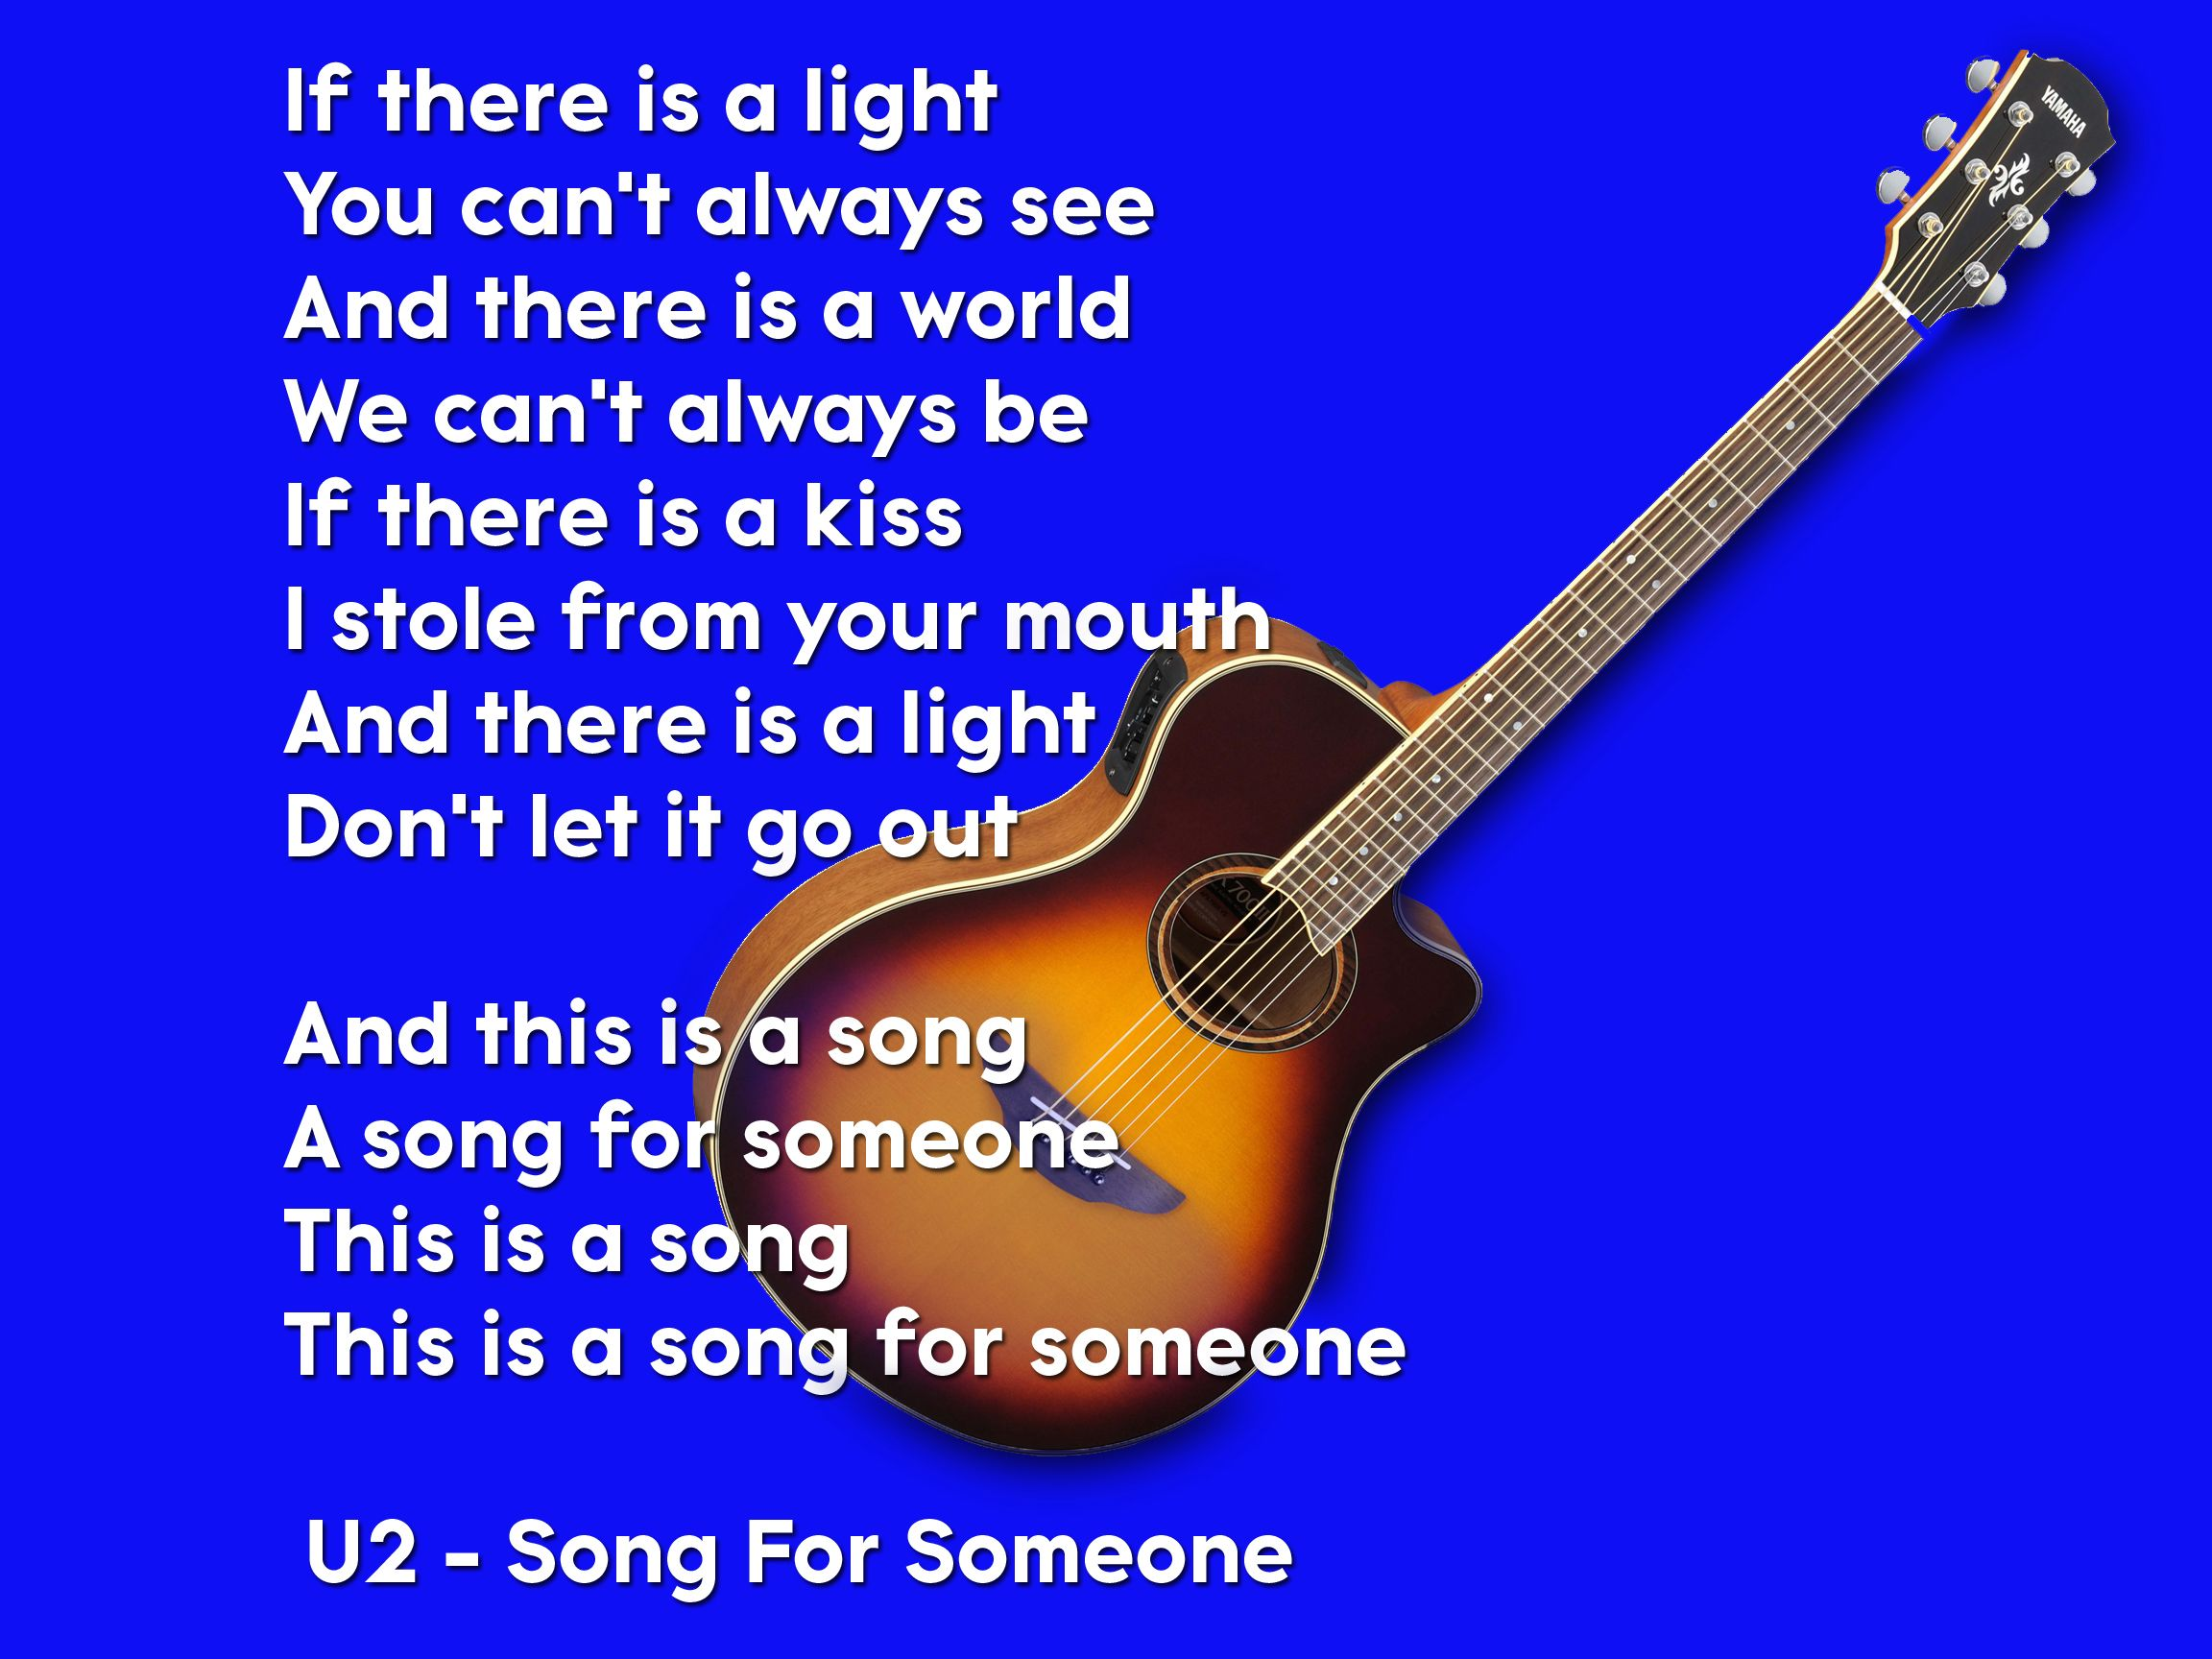 When I Play This Song It S Always Forever And Only For You Song For Someone U2 Songs Of Innocence Songs Of Innocence U2 Songs Songs